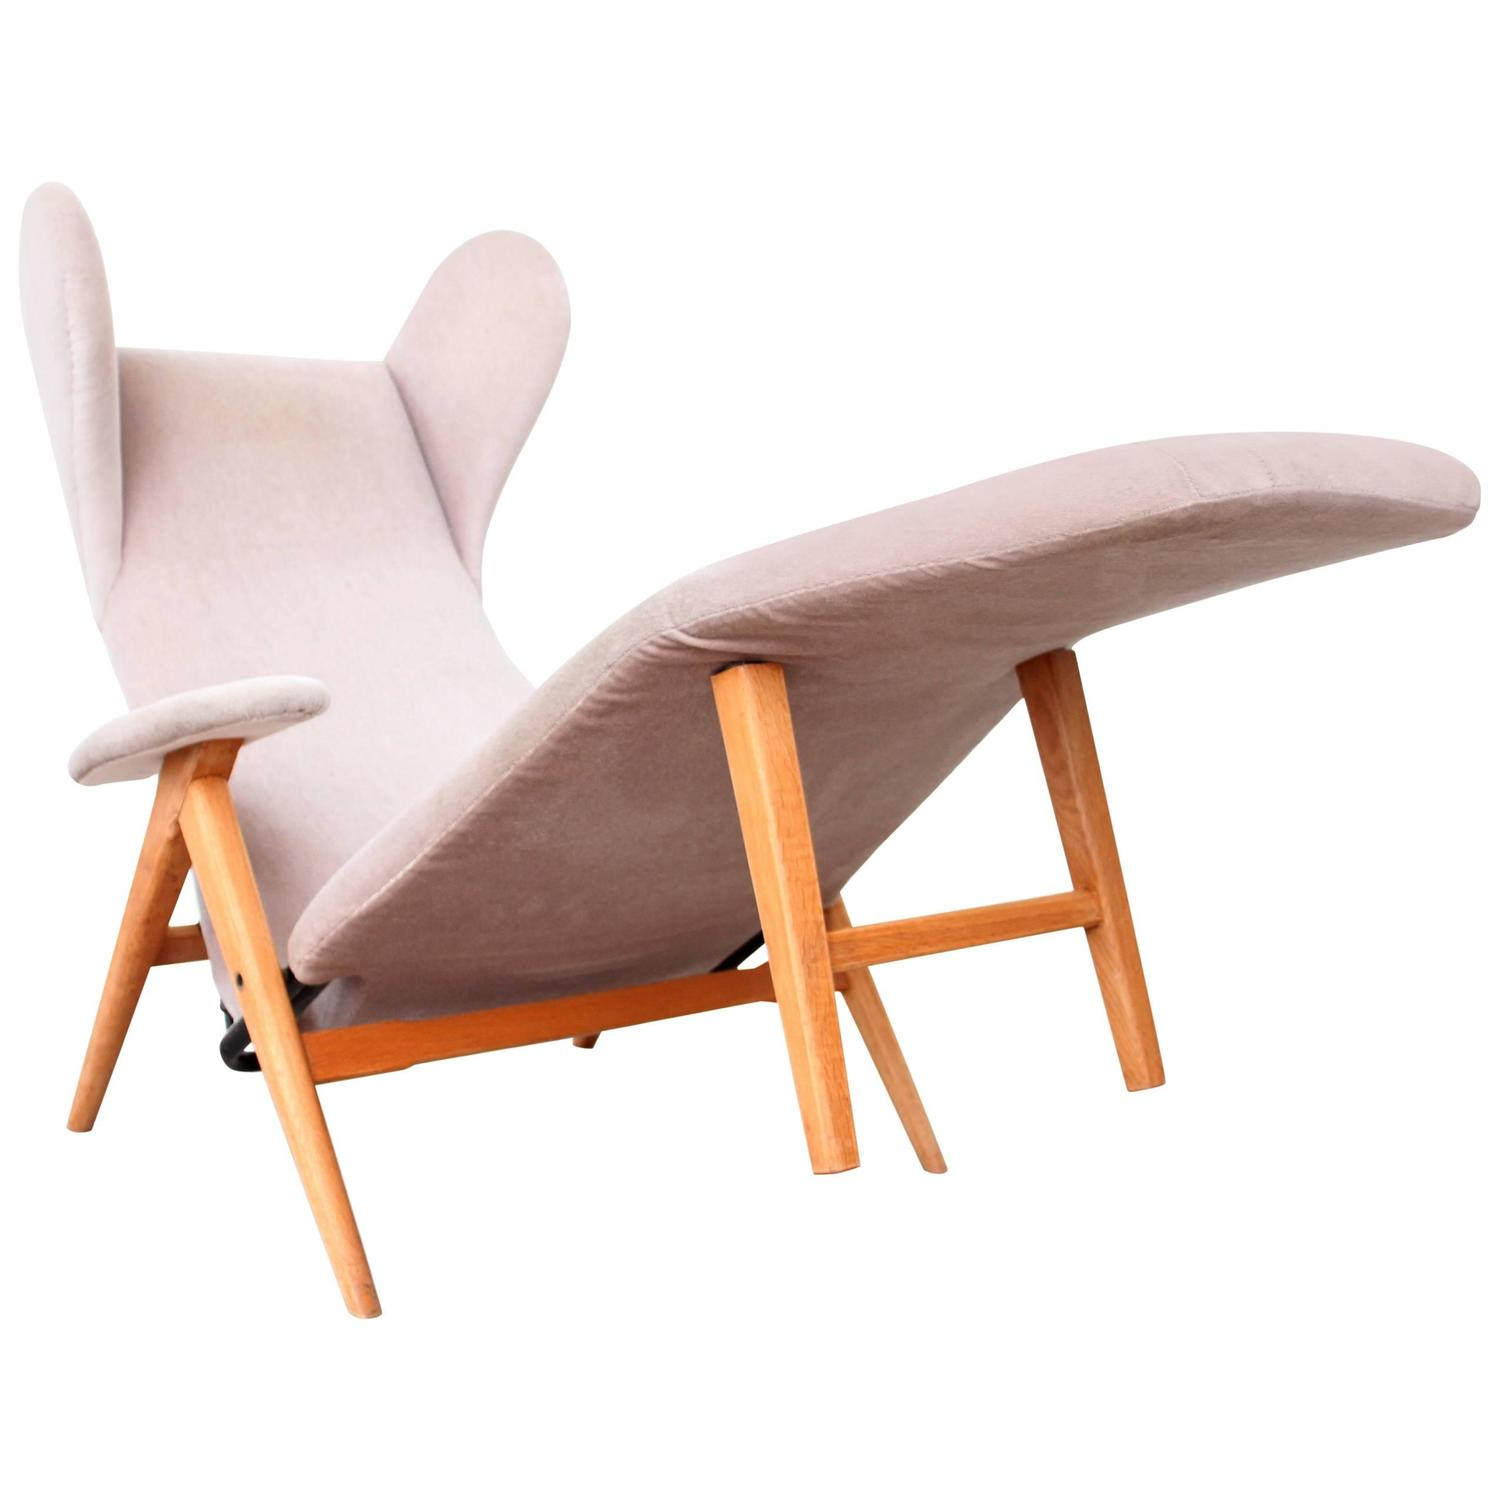 H w klein chaise longue chair for sale at 1stdibs for Chaise henri 4